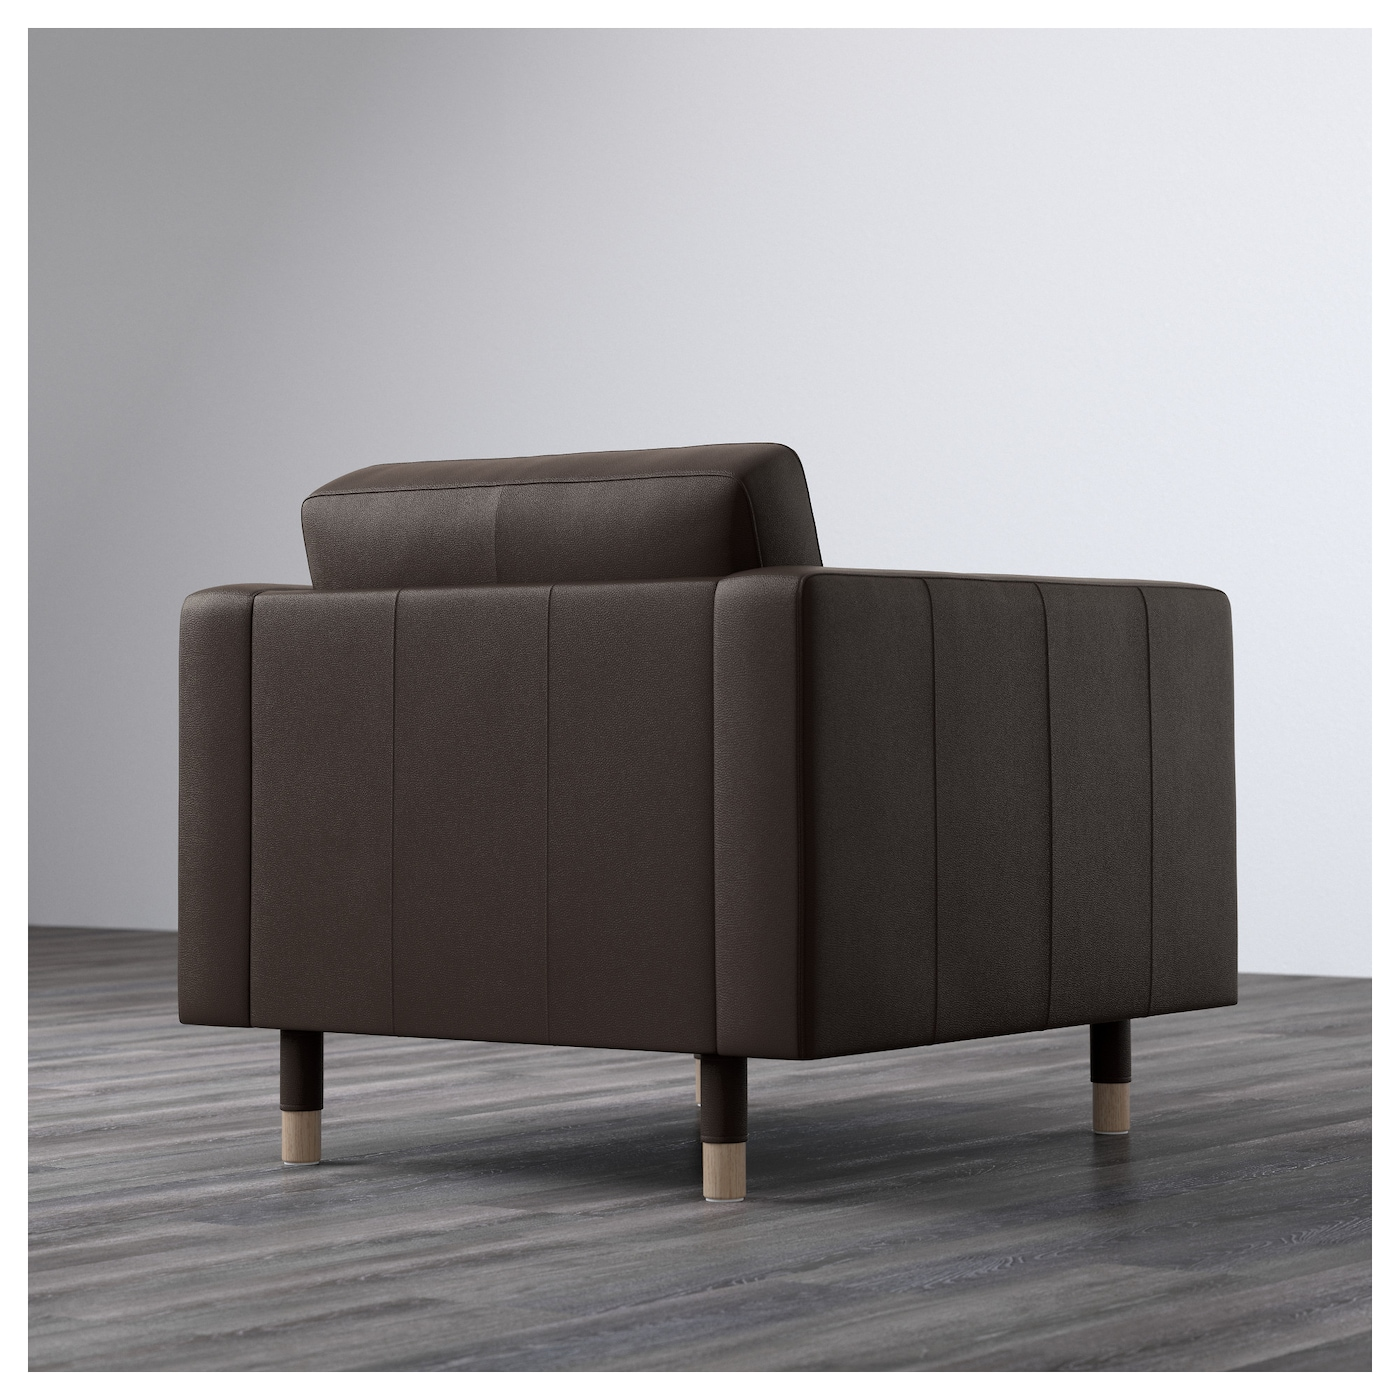 IKEA LANDSKRONA armchair 10 year guarantee. Read about the terms in the guarantee brochure.